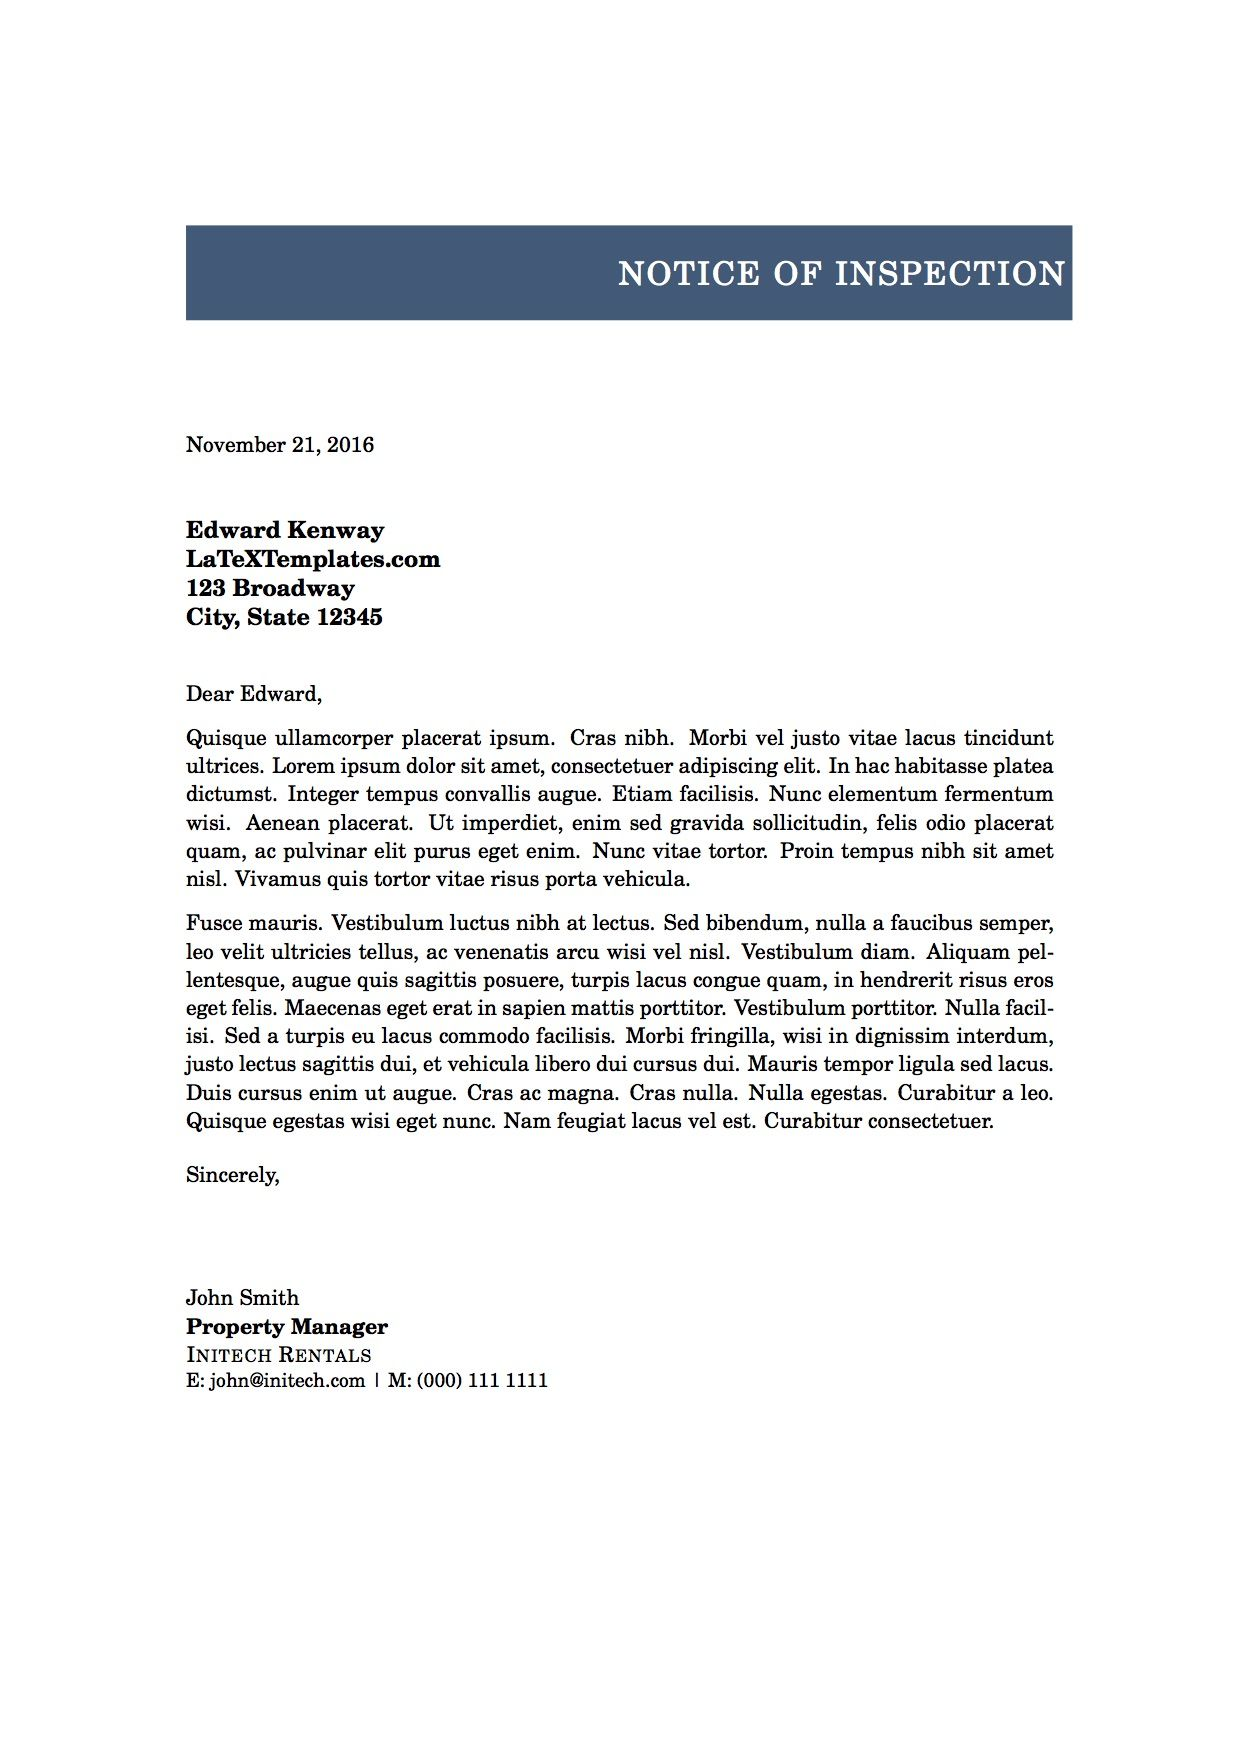 Letter Of Notice Latex Template  Latex Templates